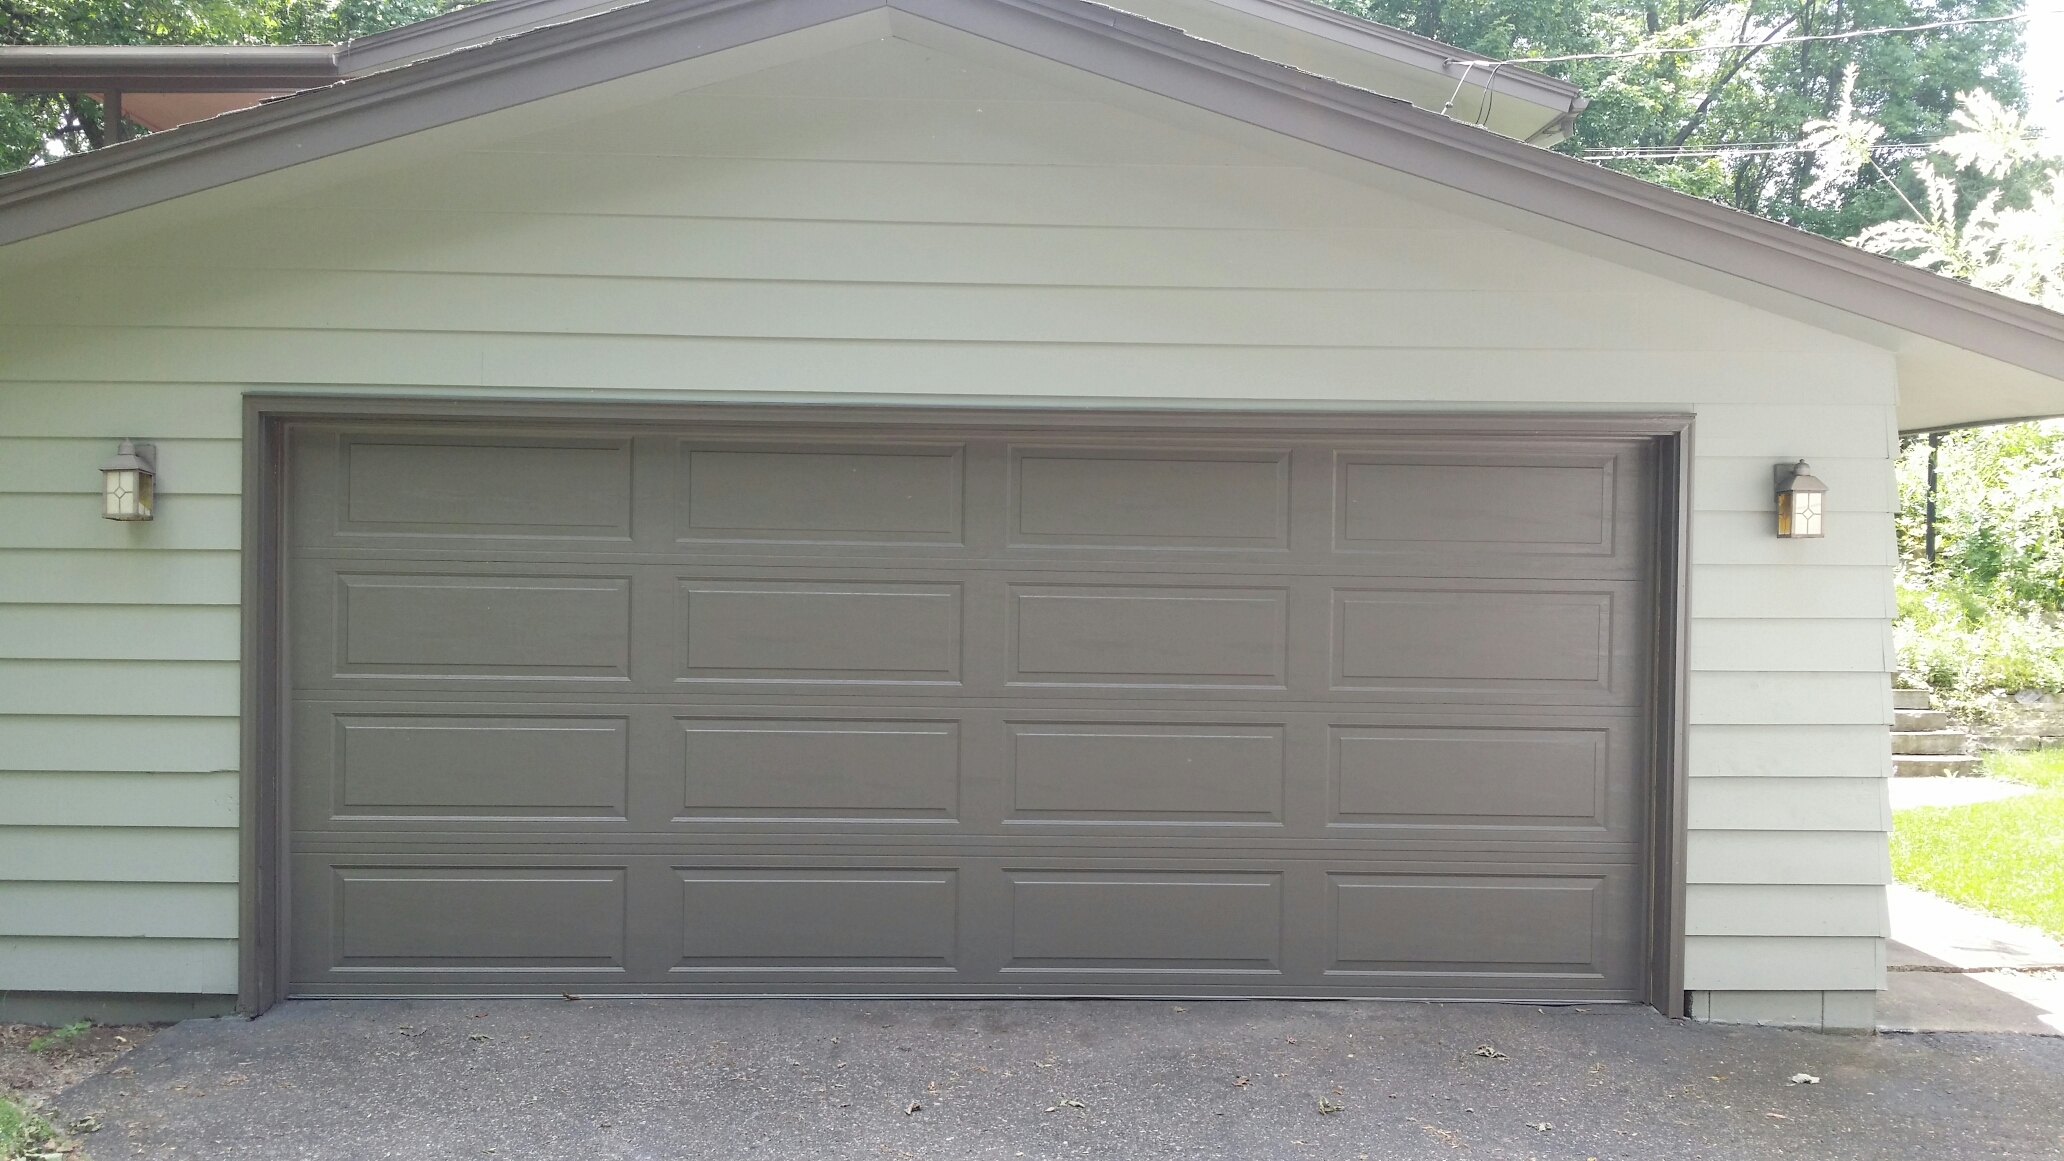 North Central 16 X 6u00279 LP138 Garage Door Installed, Customers Old Door Could